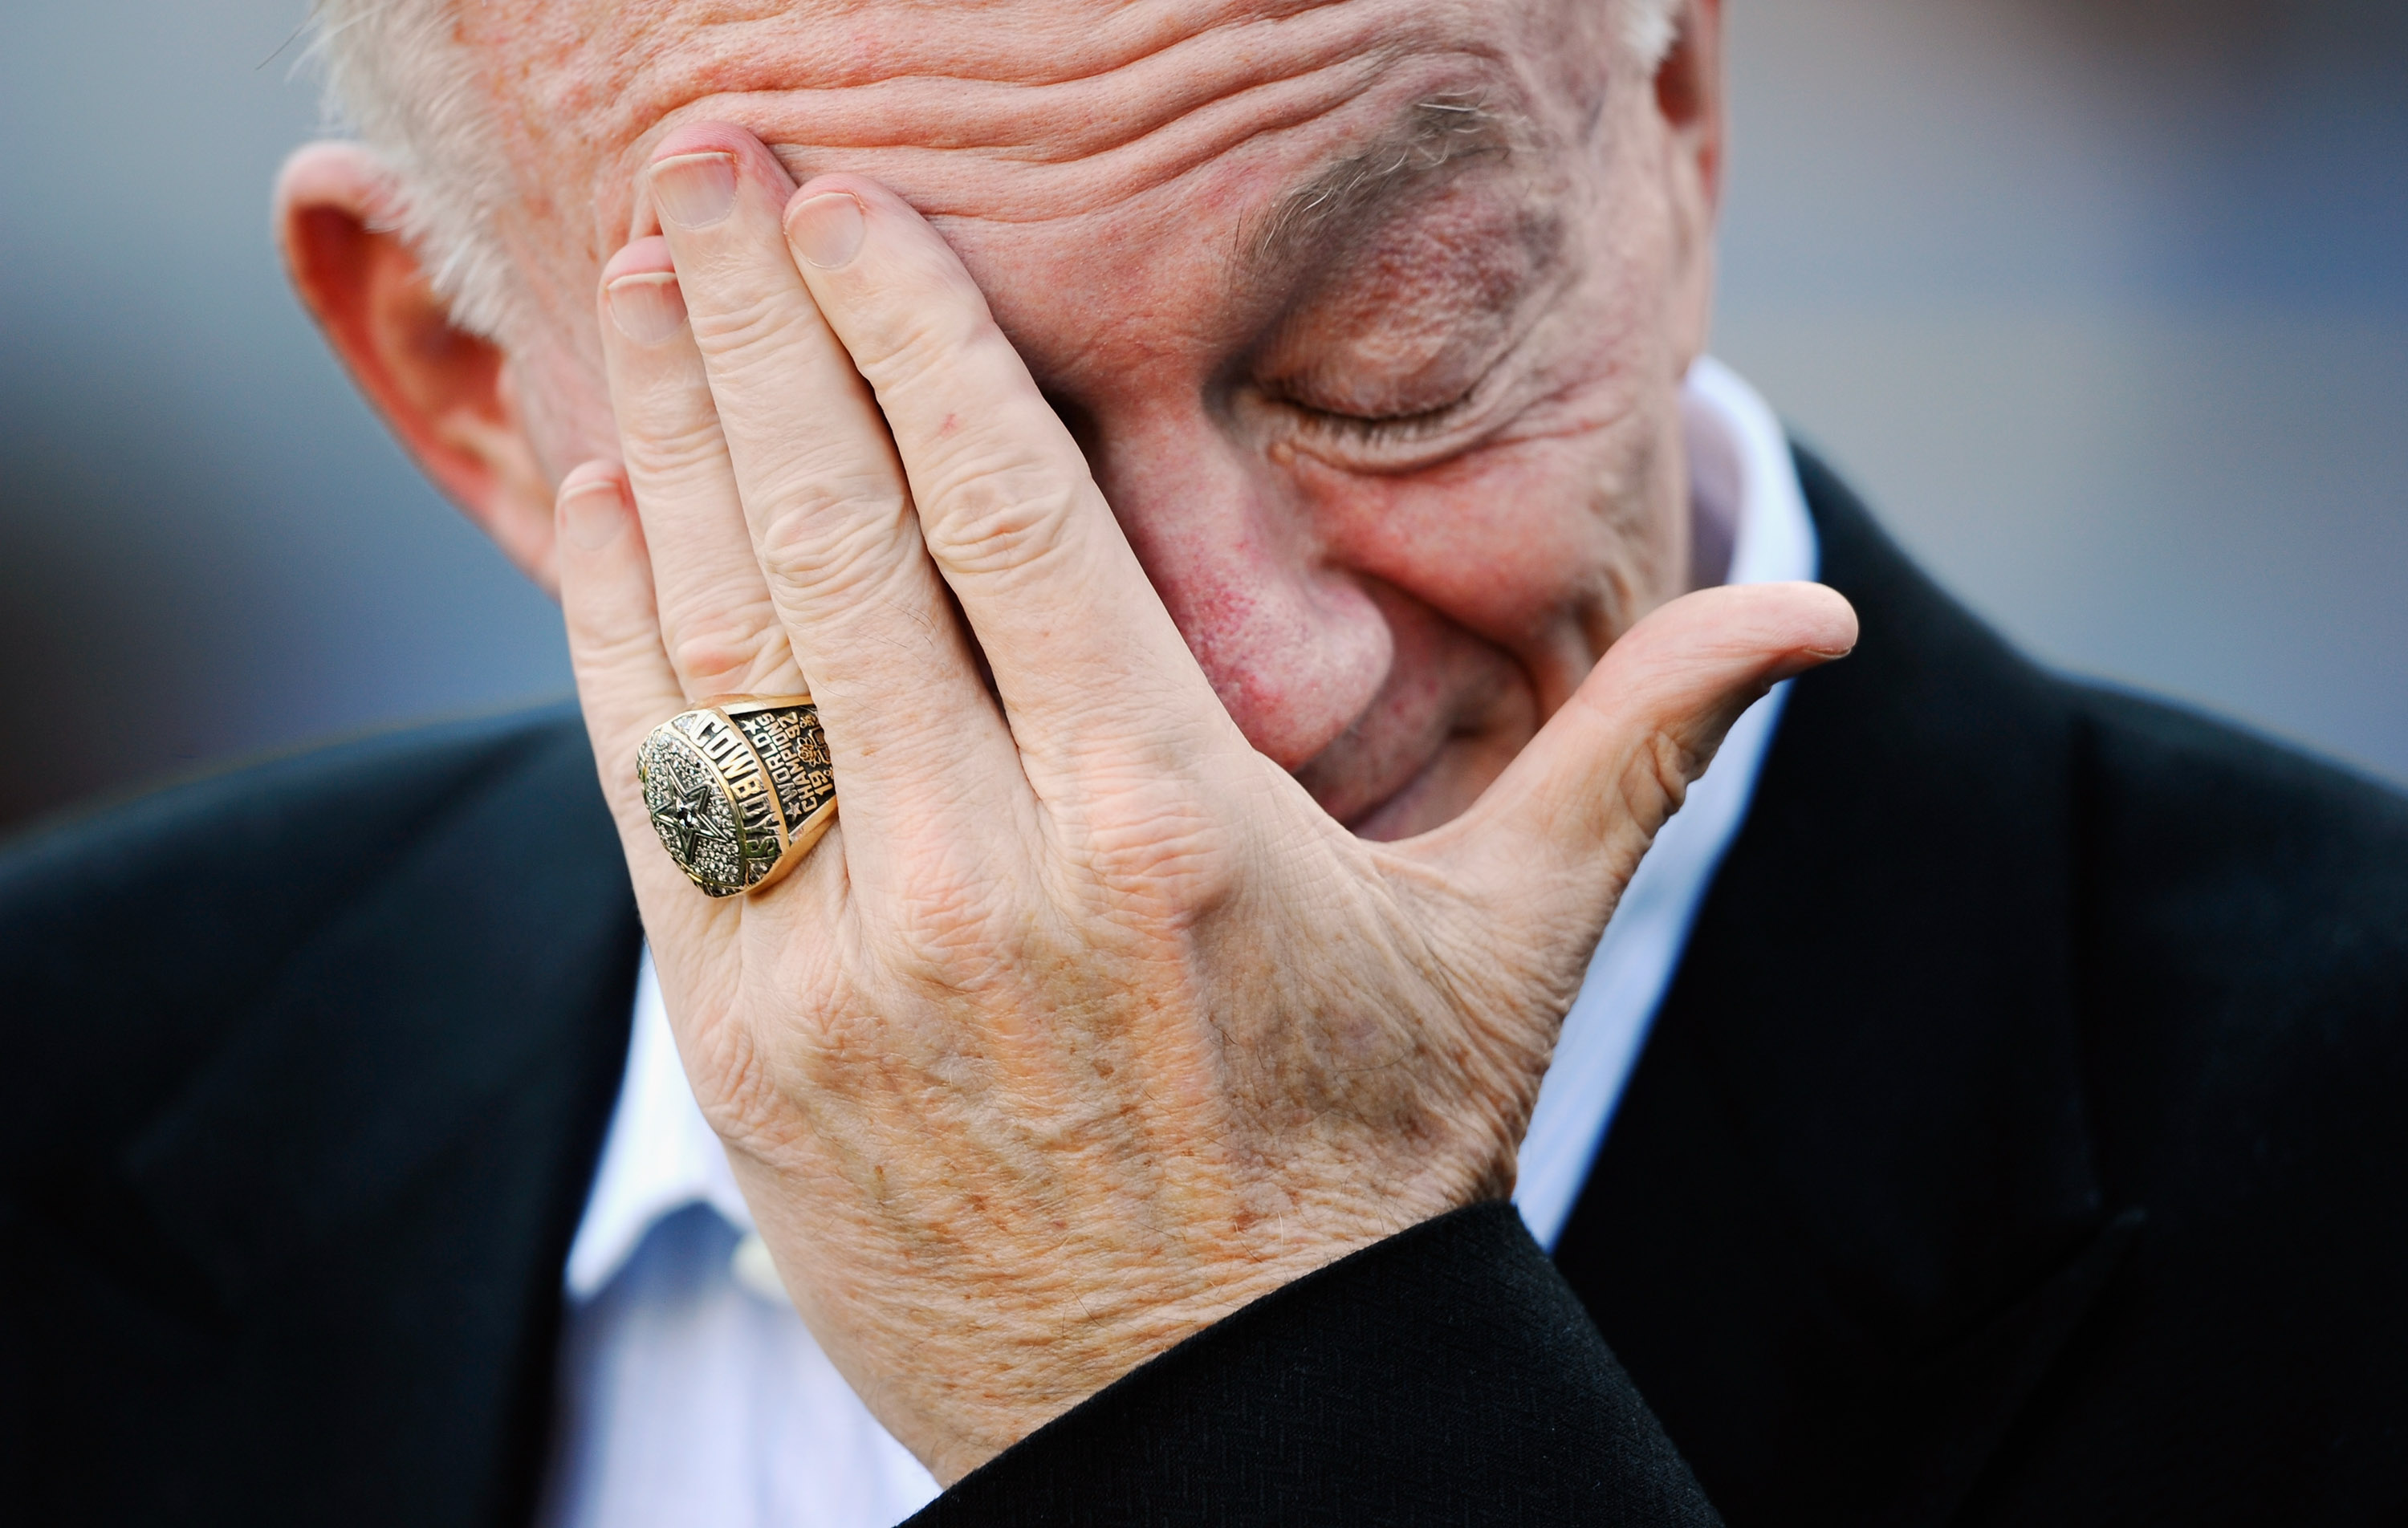 SAN DIEGO - AUGUST 21:  Dallas Cowboys owner Jerry Jones during preseason game against the San Diego Chargers at Qualcomm Stadium on August 21, 2010 in San Diego, California.  (Photo by Kevork Djansezian/Getty Images)